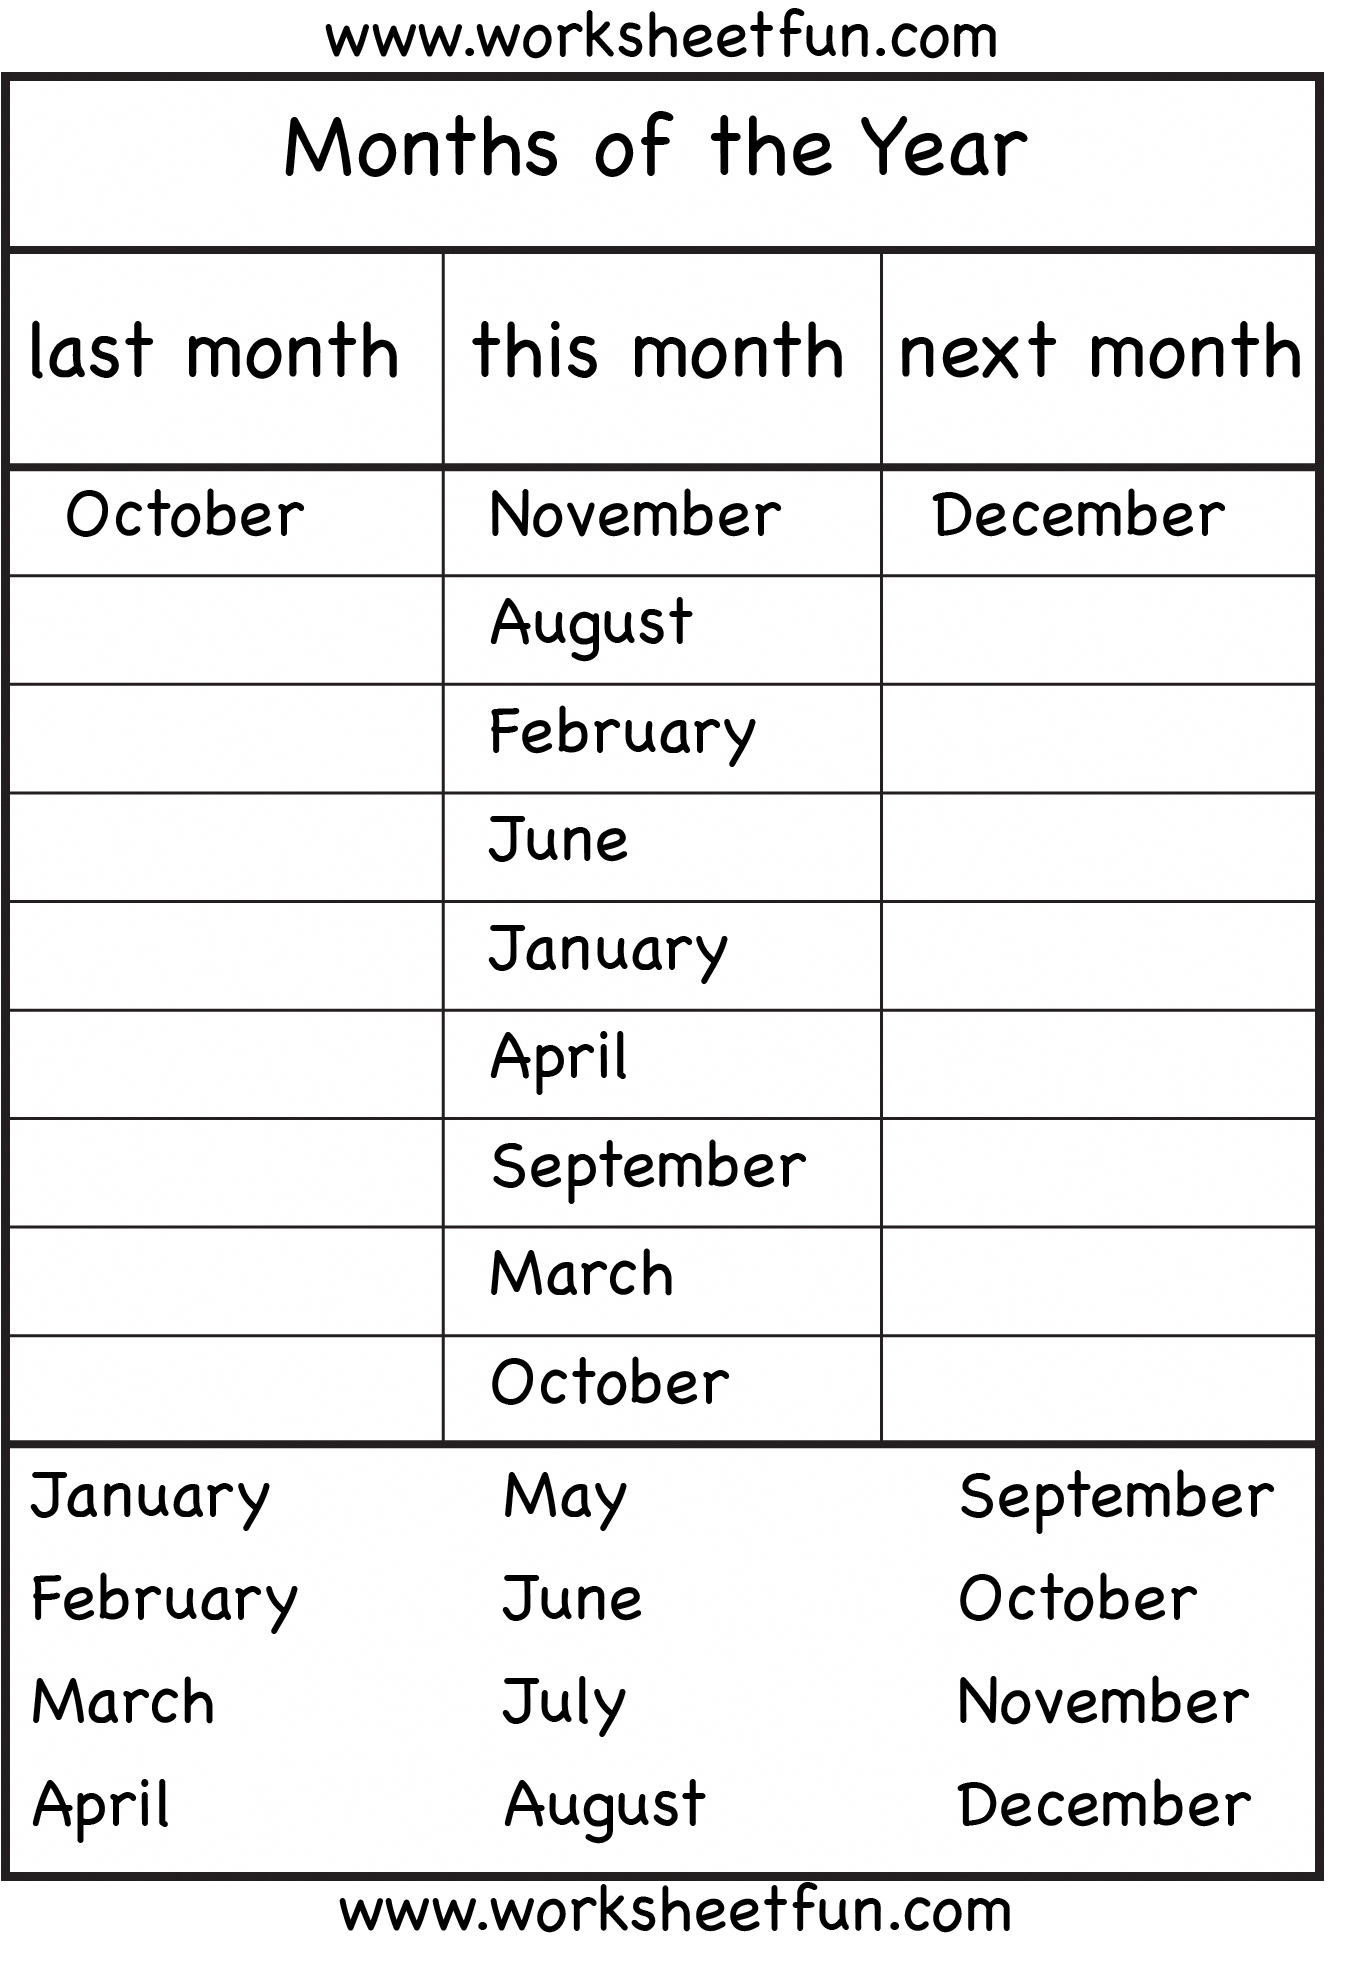 Help Your First Grader Learn The Months Of The Year From